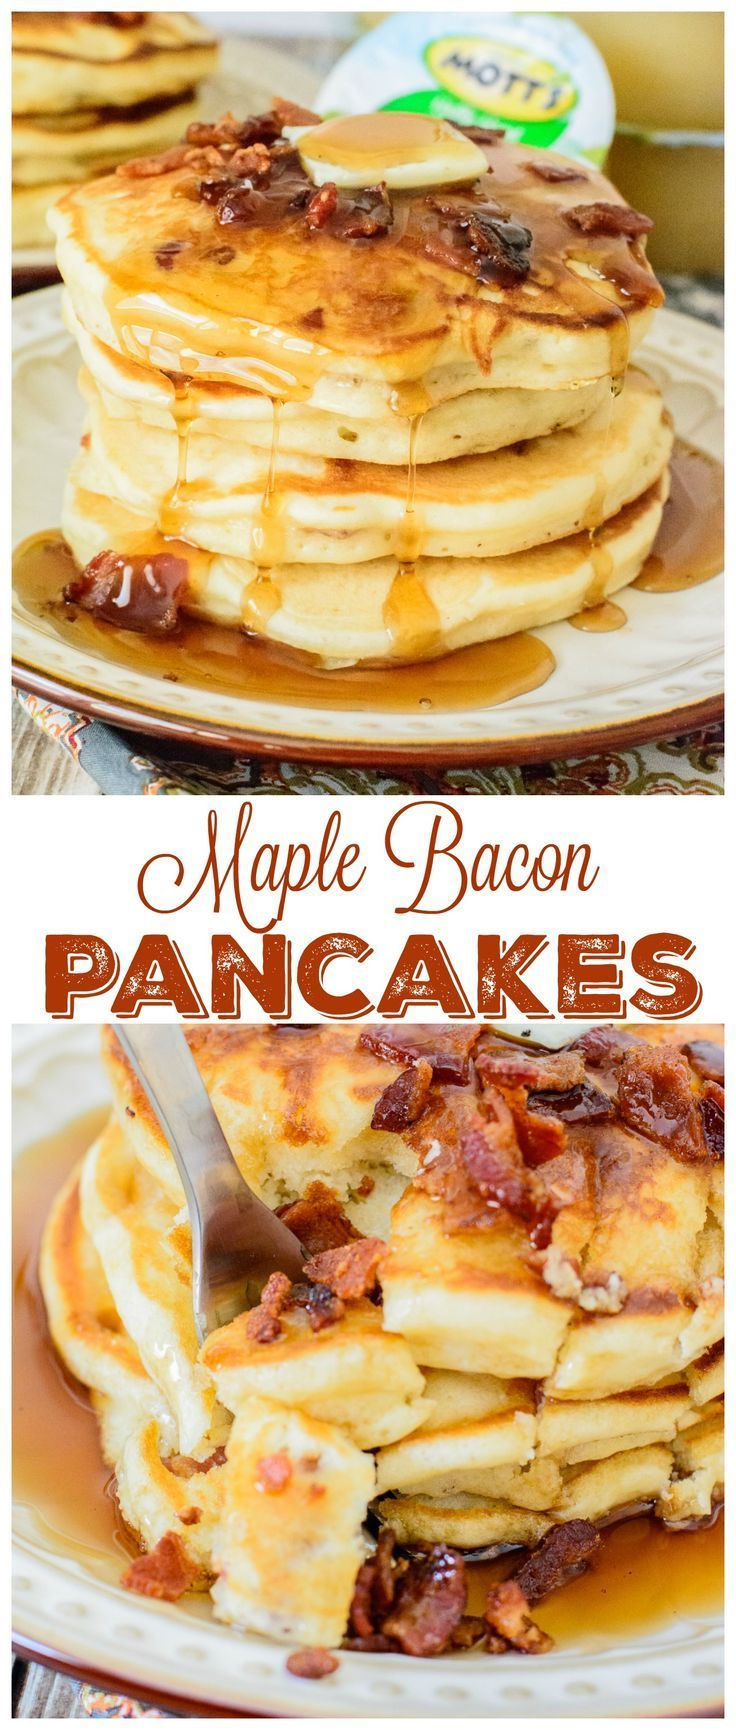 Maple Bacon Pancakes. Light and fluffy pancakes with pure maple syrup and crispy bacon. This pancake recipe is the king of all pancake recipes. You will love every bite! (Breakfast Recipes With Bacon)